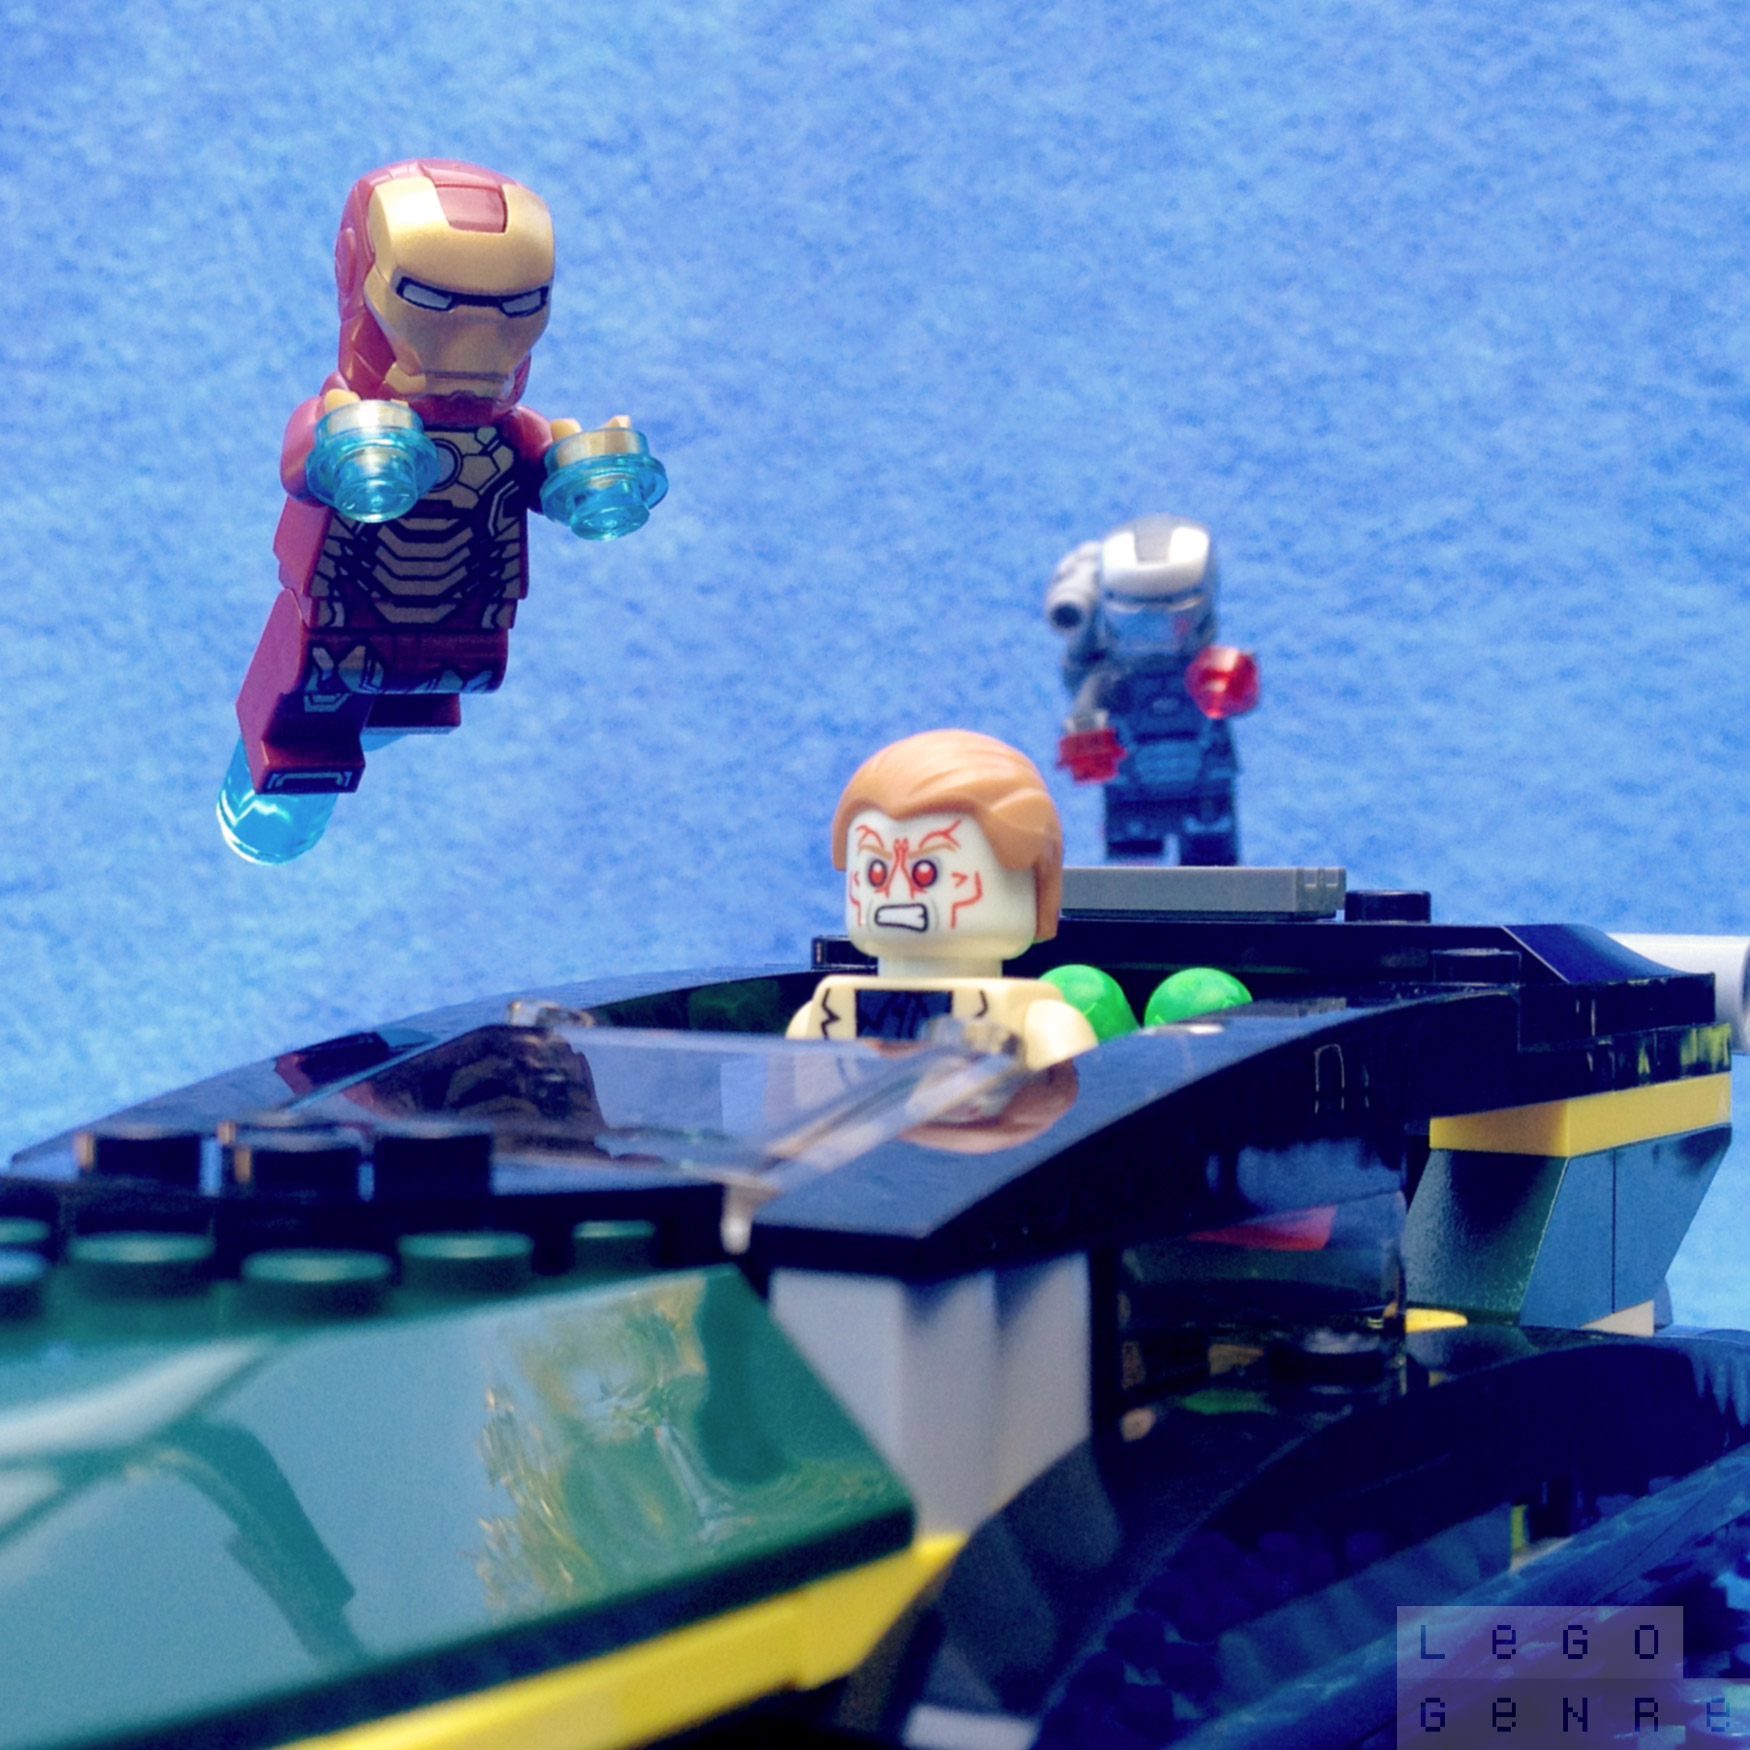 LegoGenre 00248: Iron Man: Extremis Sea Port Battle